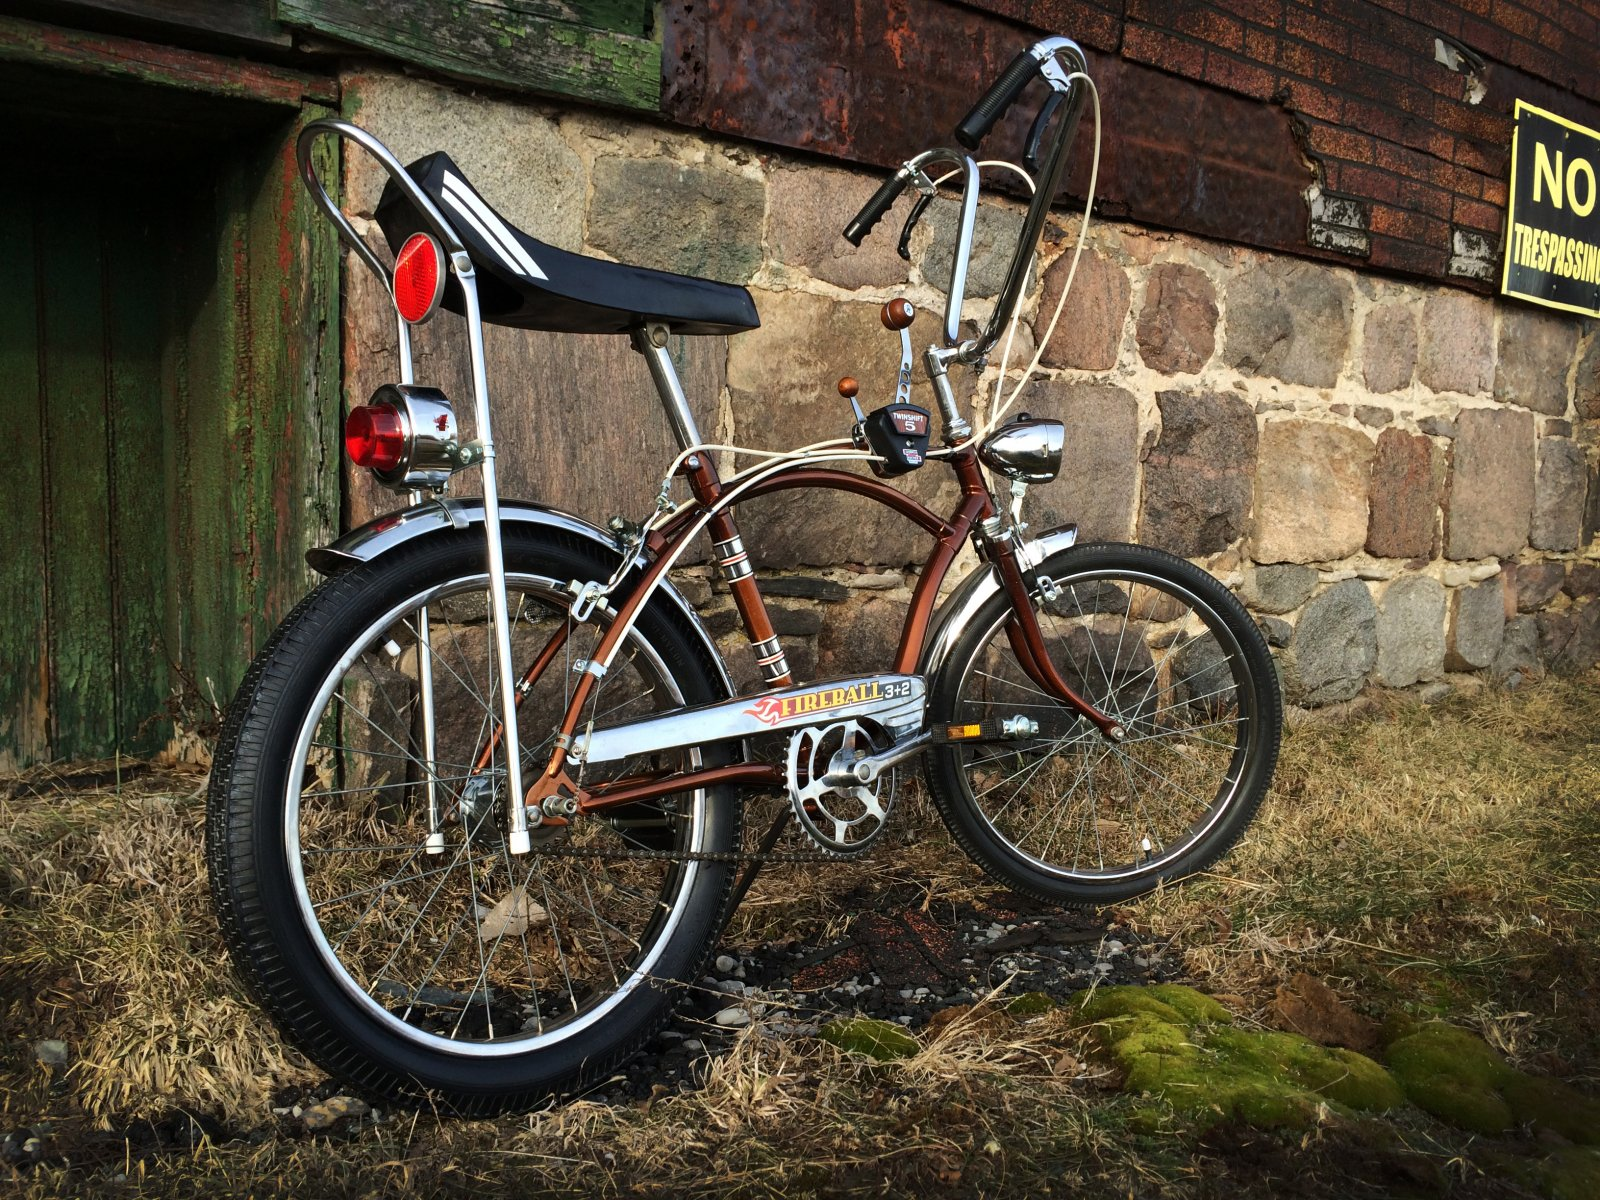 02 1968 Raleigh Fireball.jpg